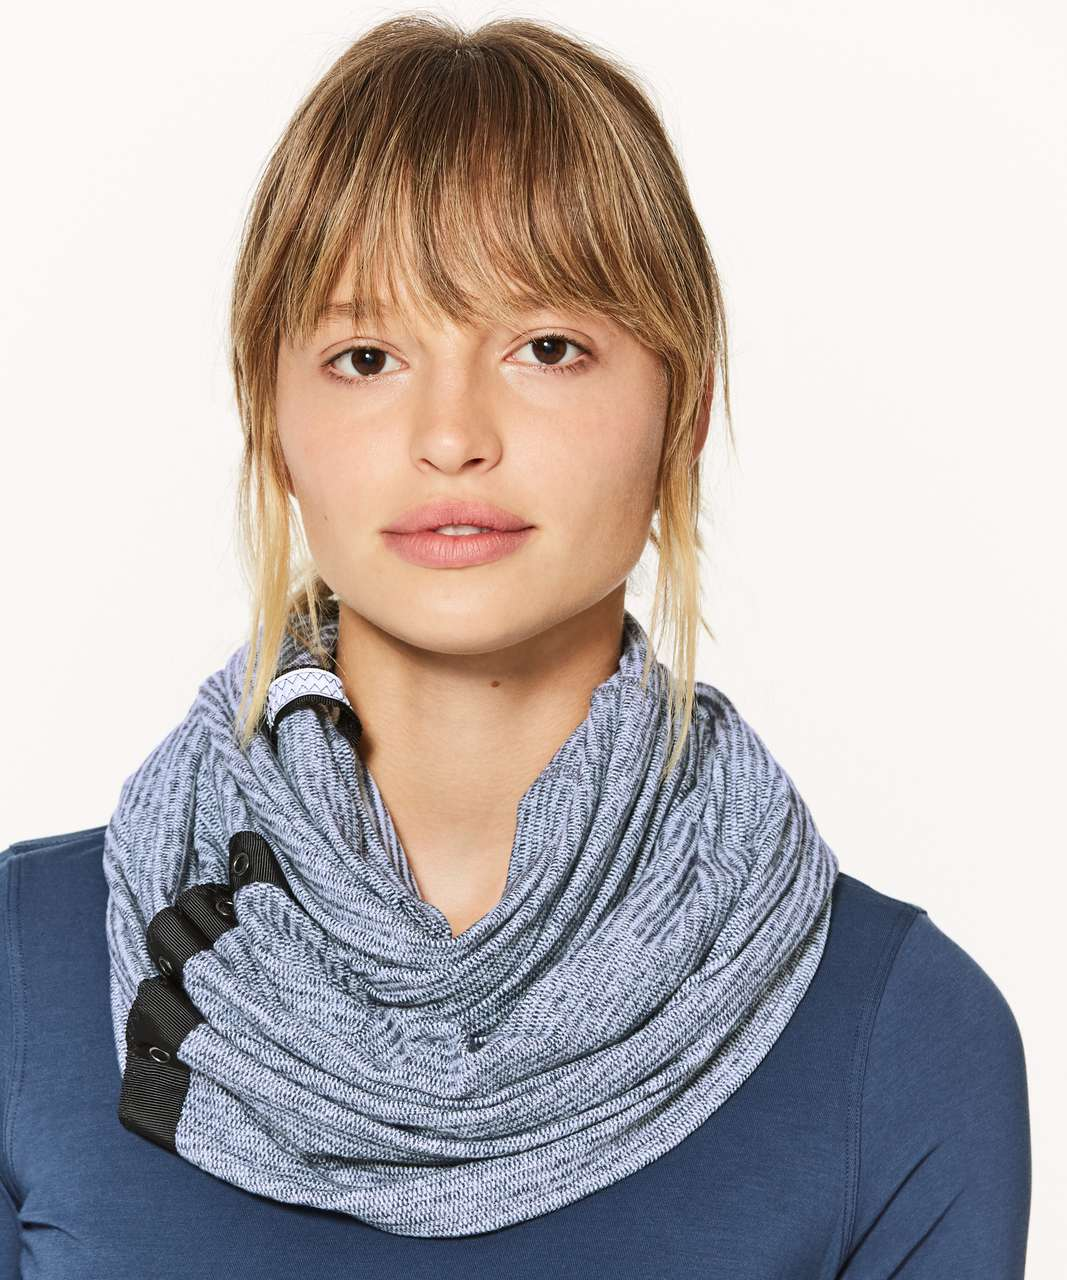 Lululemon Vinyasa Scarf *Rulu - Mini Check Pique Sea Mist Heathered Deep Navy